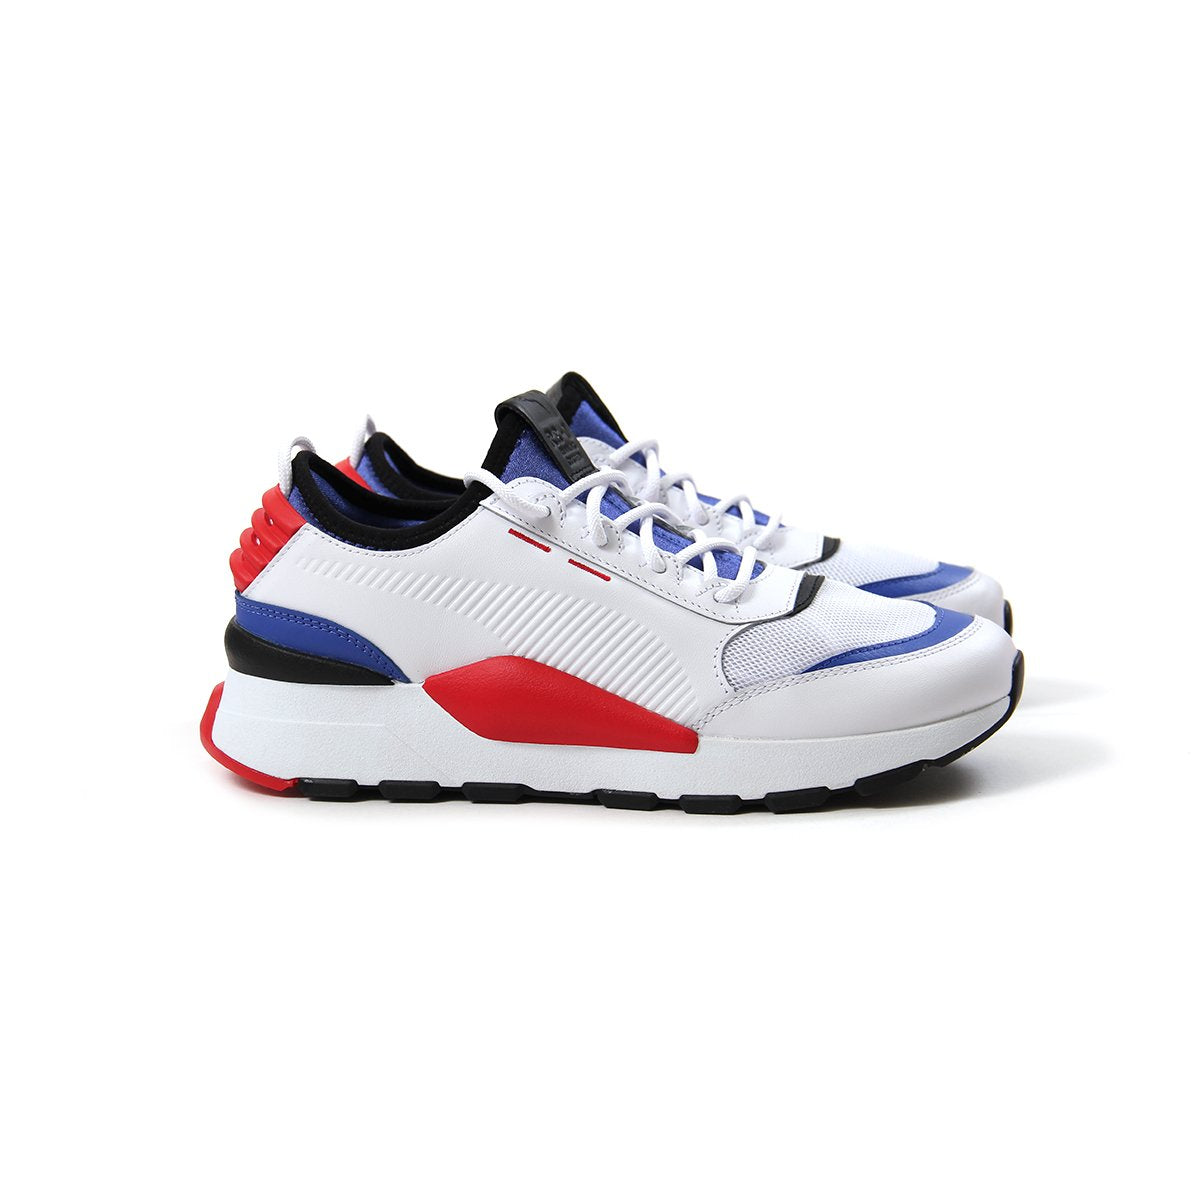 5a4515afdcc723 Puma RS-0 Sound (Puma White Dazzling Blue-High Risk Red)